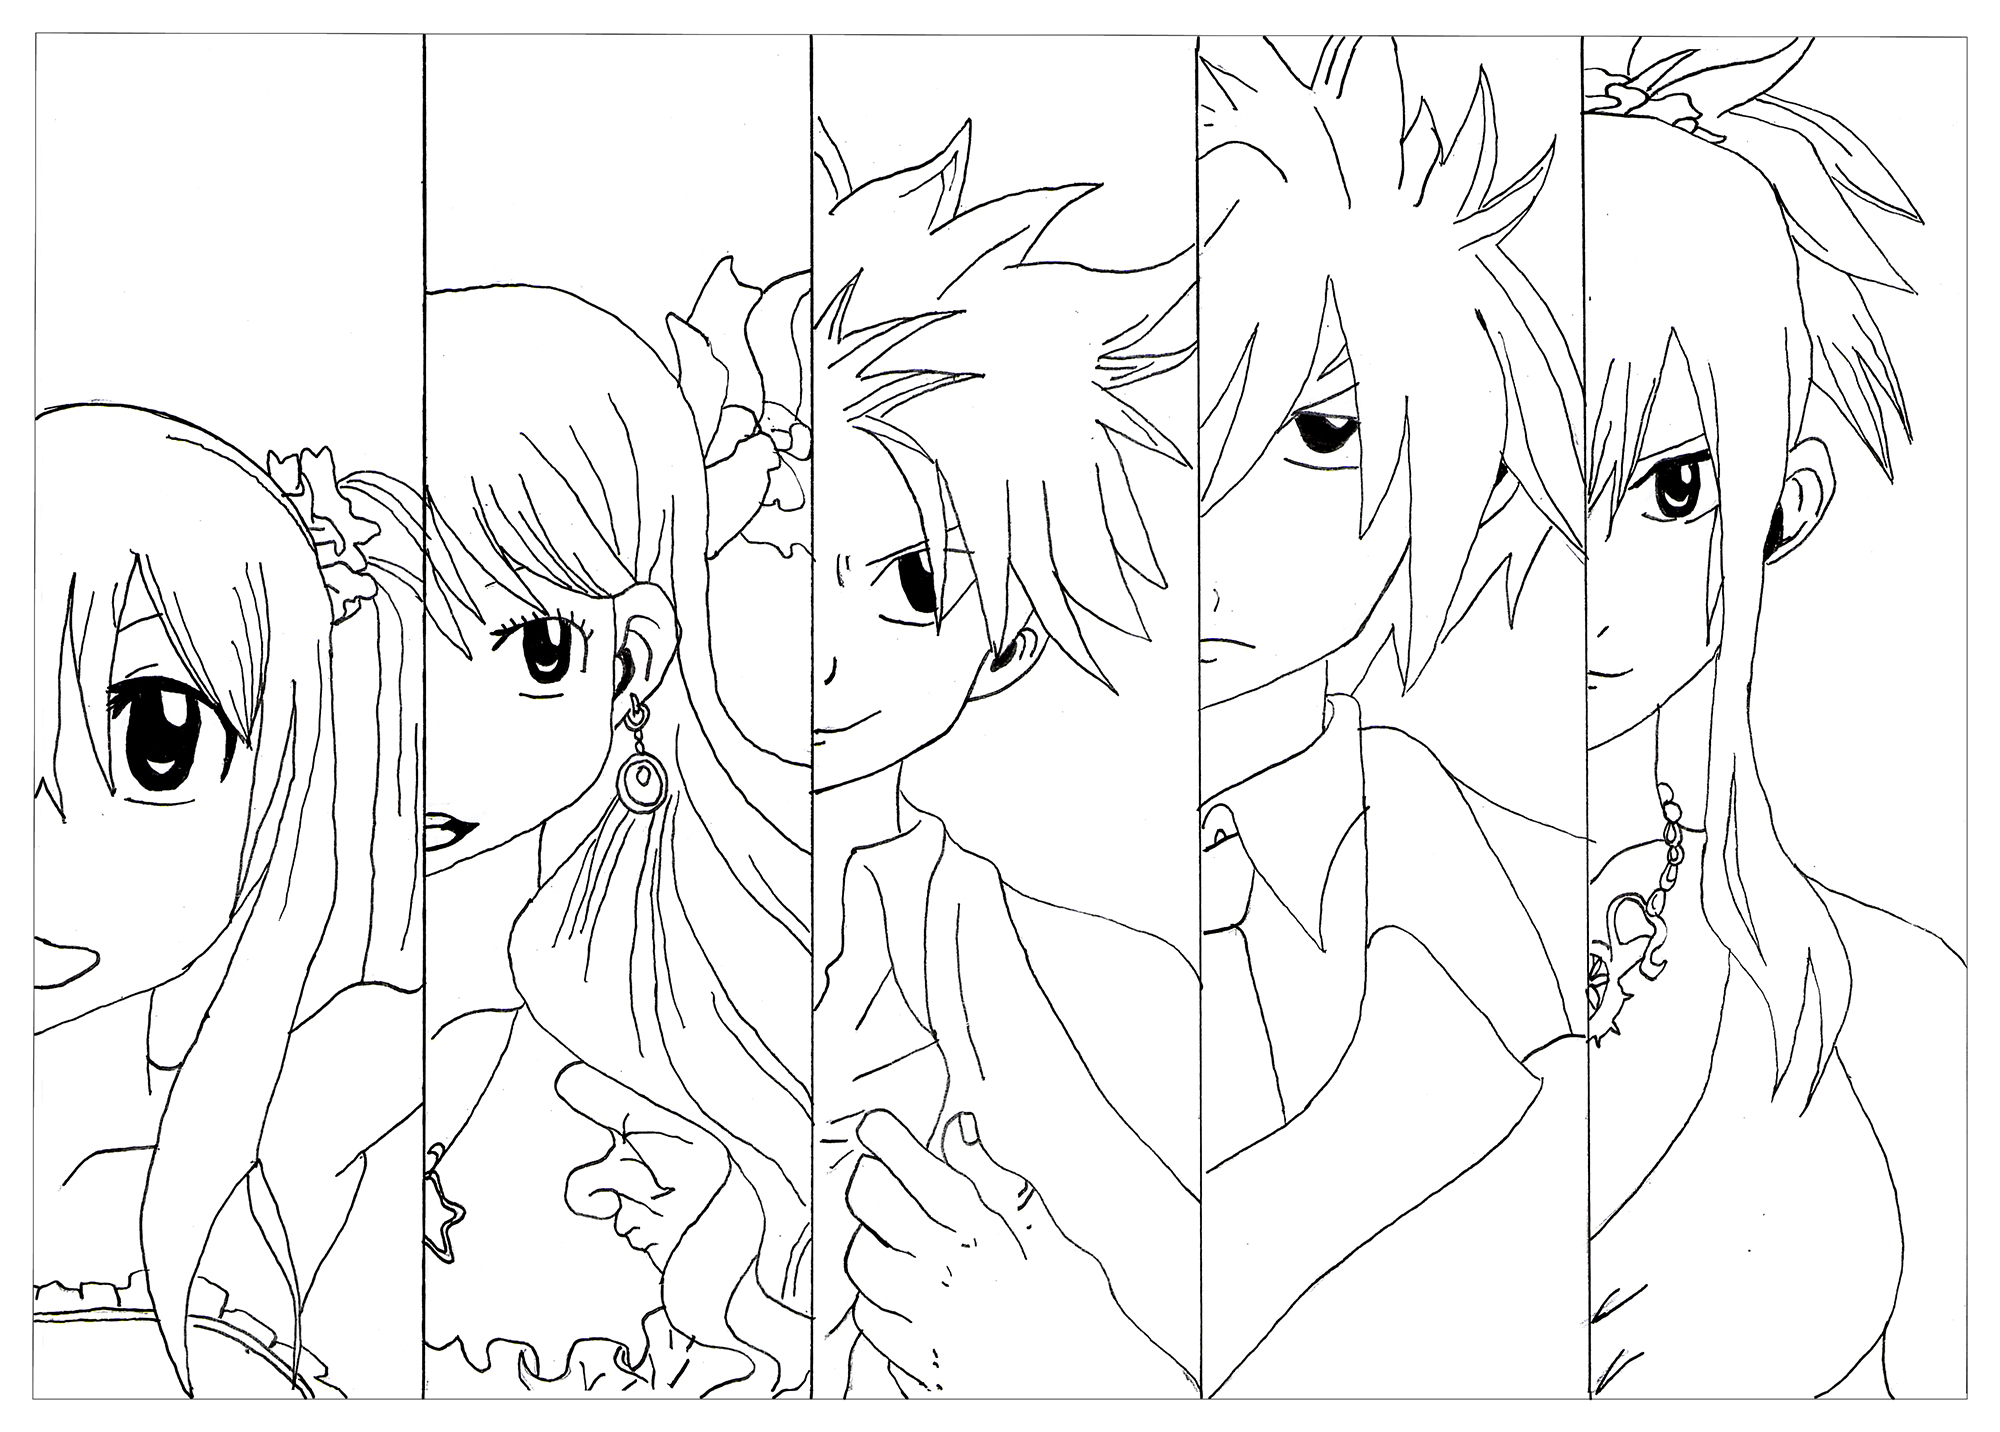 manga fairy tail krissy manga anime coloring pages for